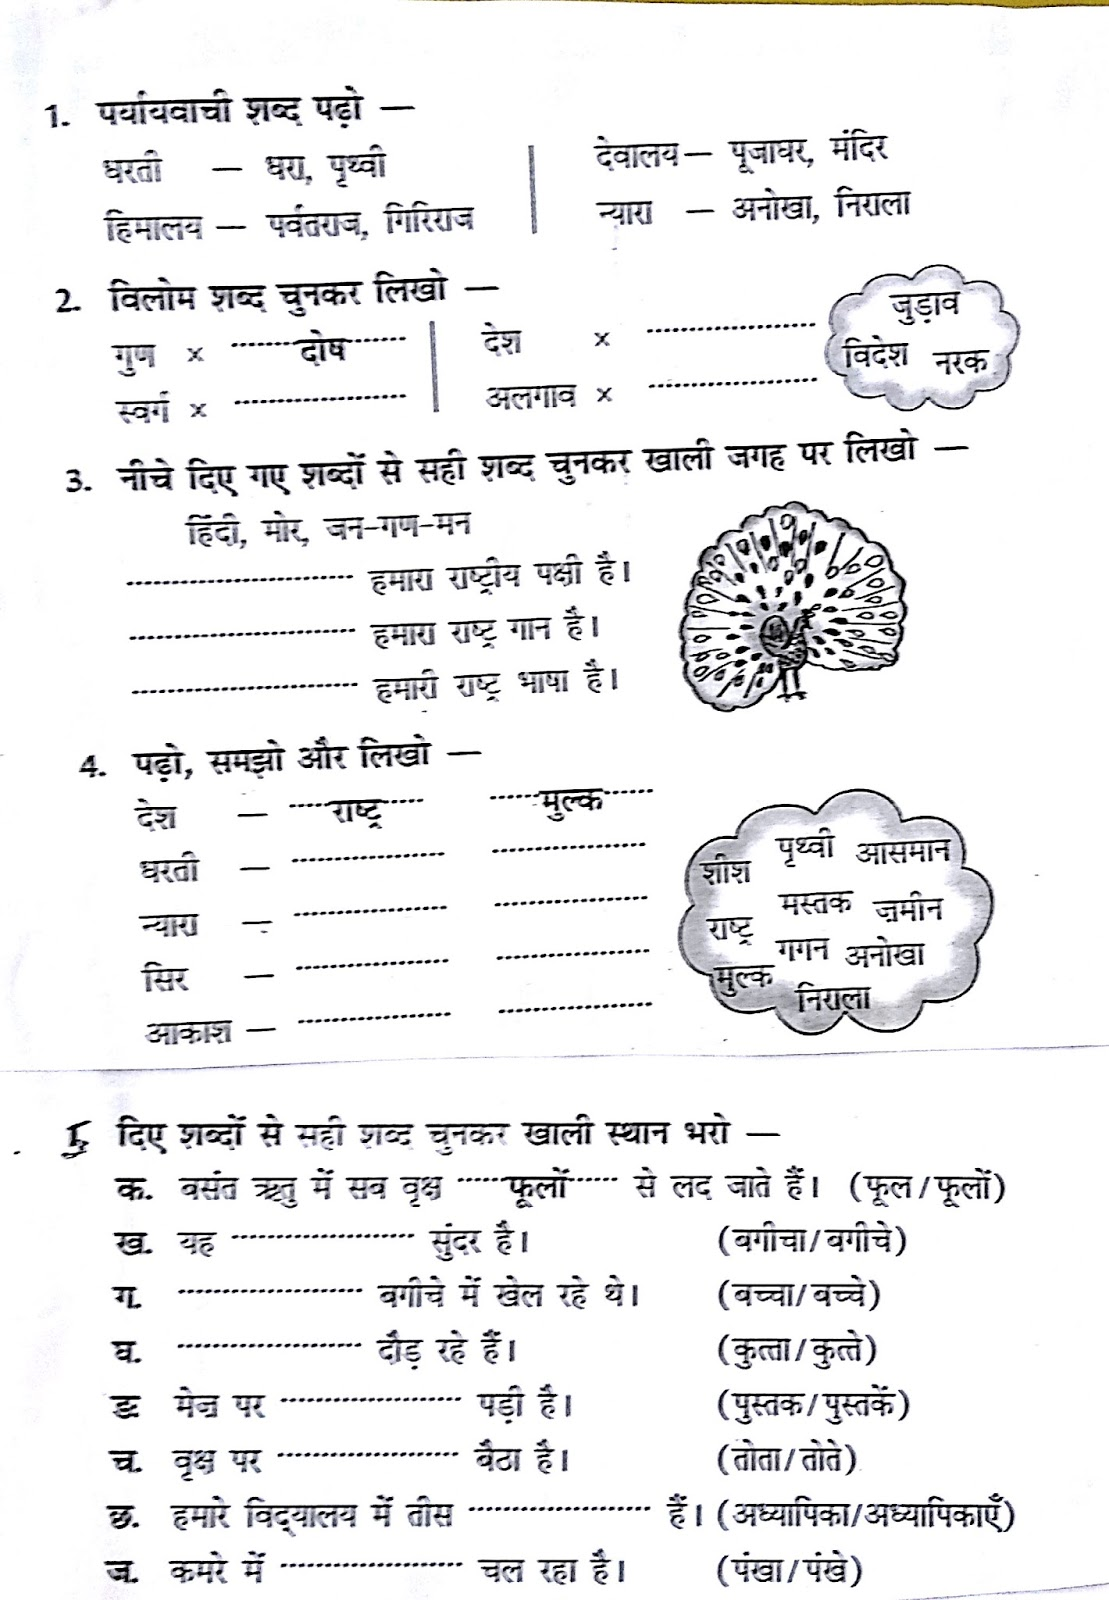 Hindi Grammar Work Sheet Collection For Classes 5 6 7 Amp 8 Different Grammar Concepts As Gender